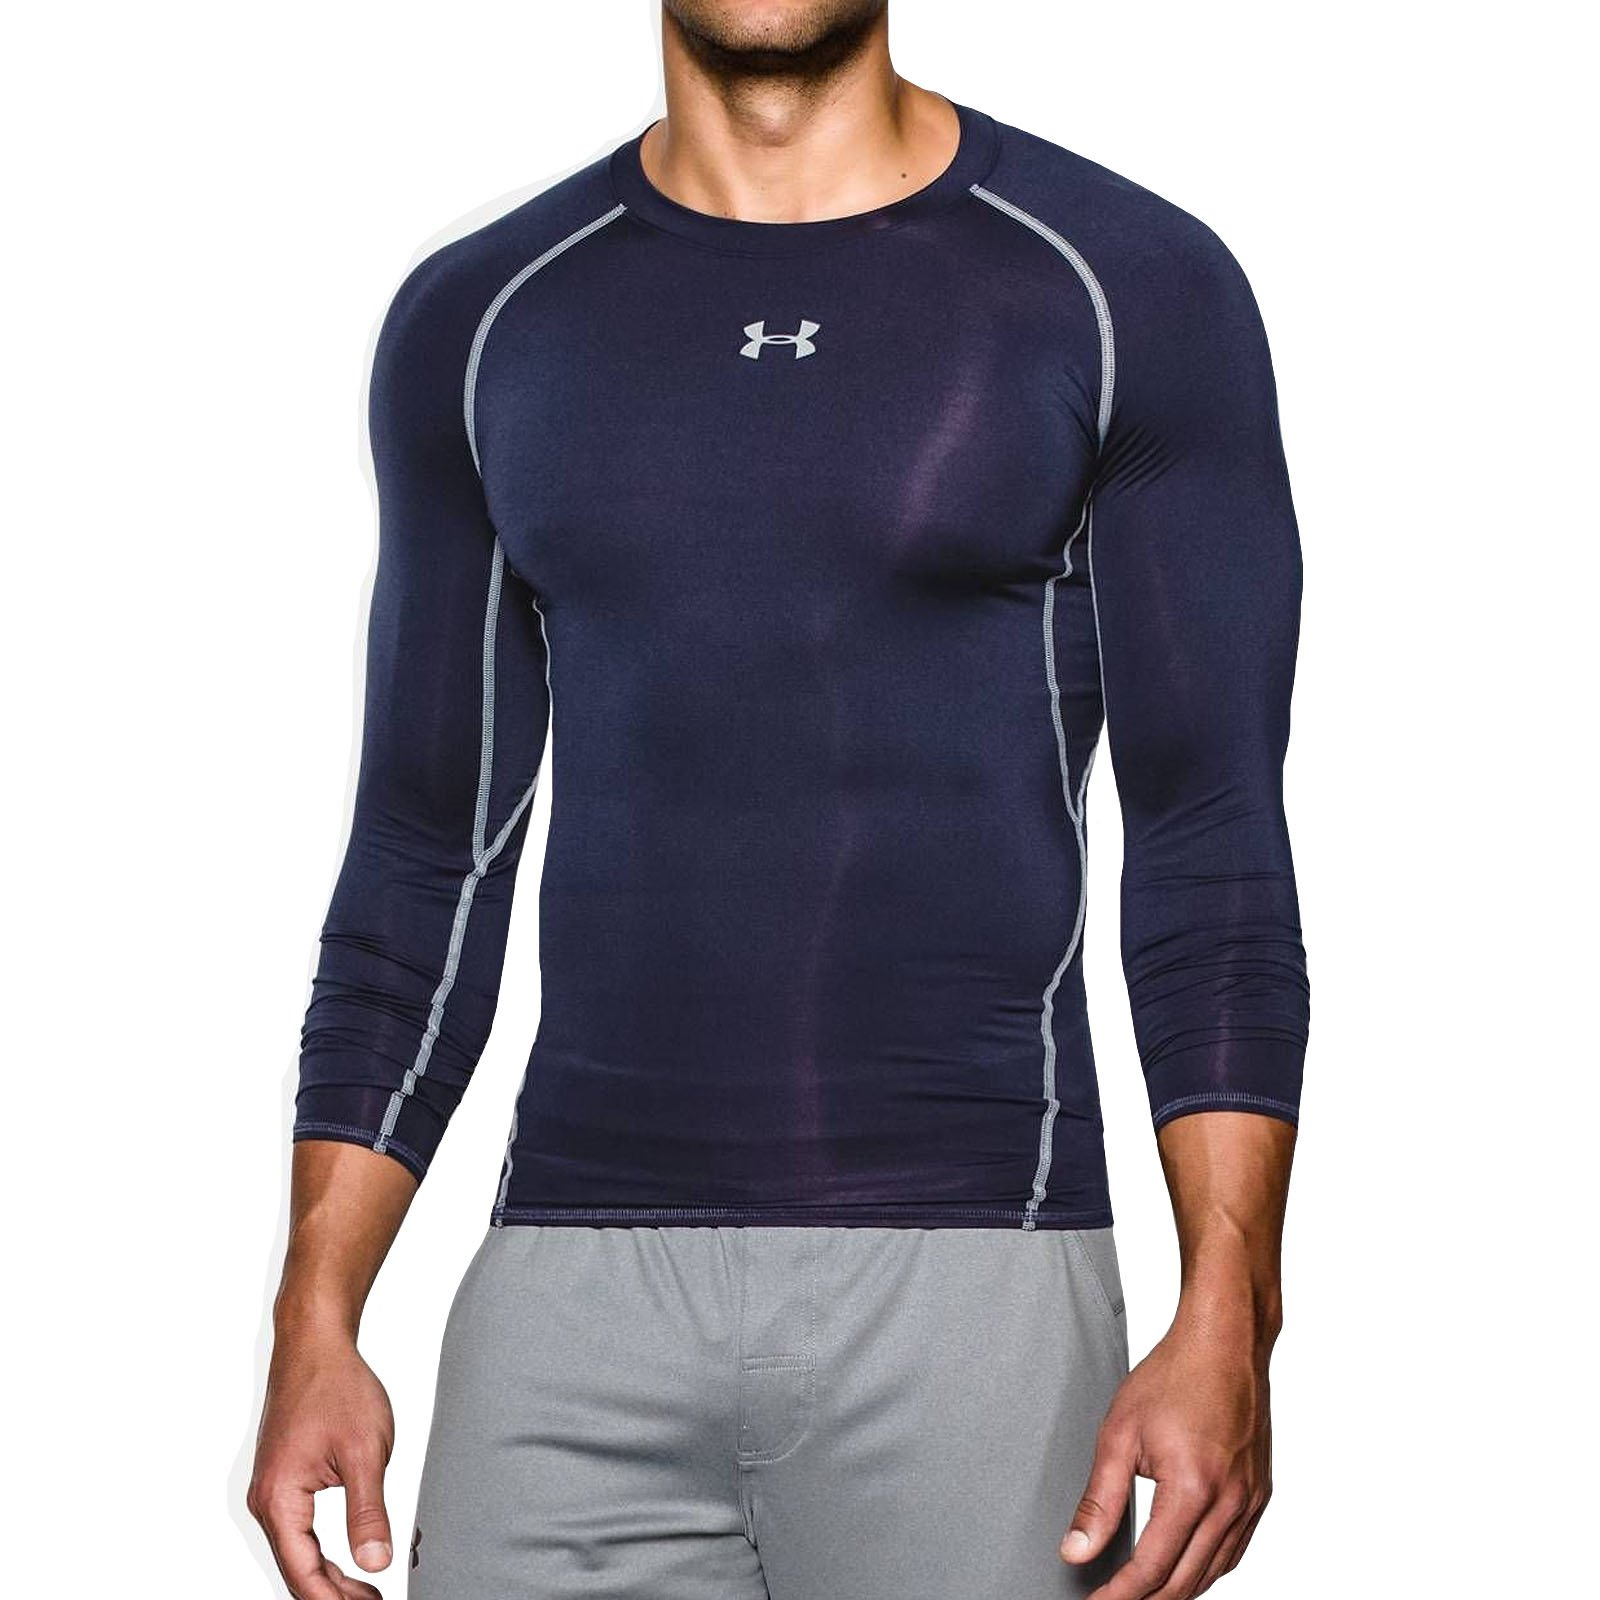 Under Armour Men's HeatGear Armour Long Sleeve, Navy Blue, S-R